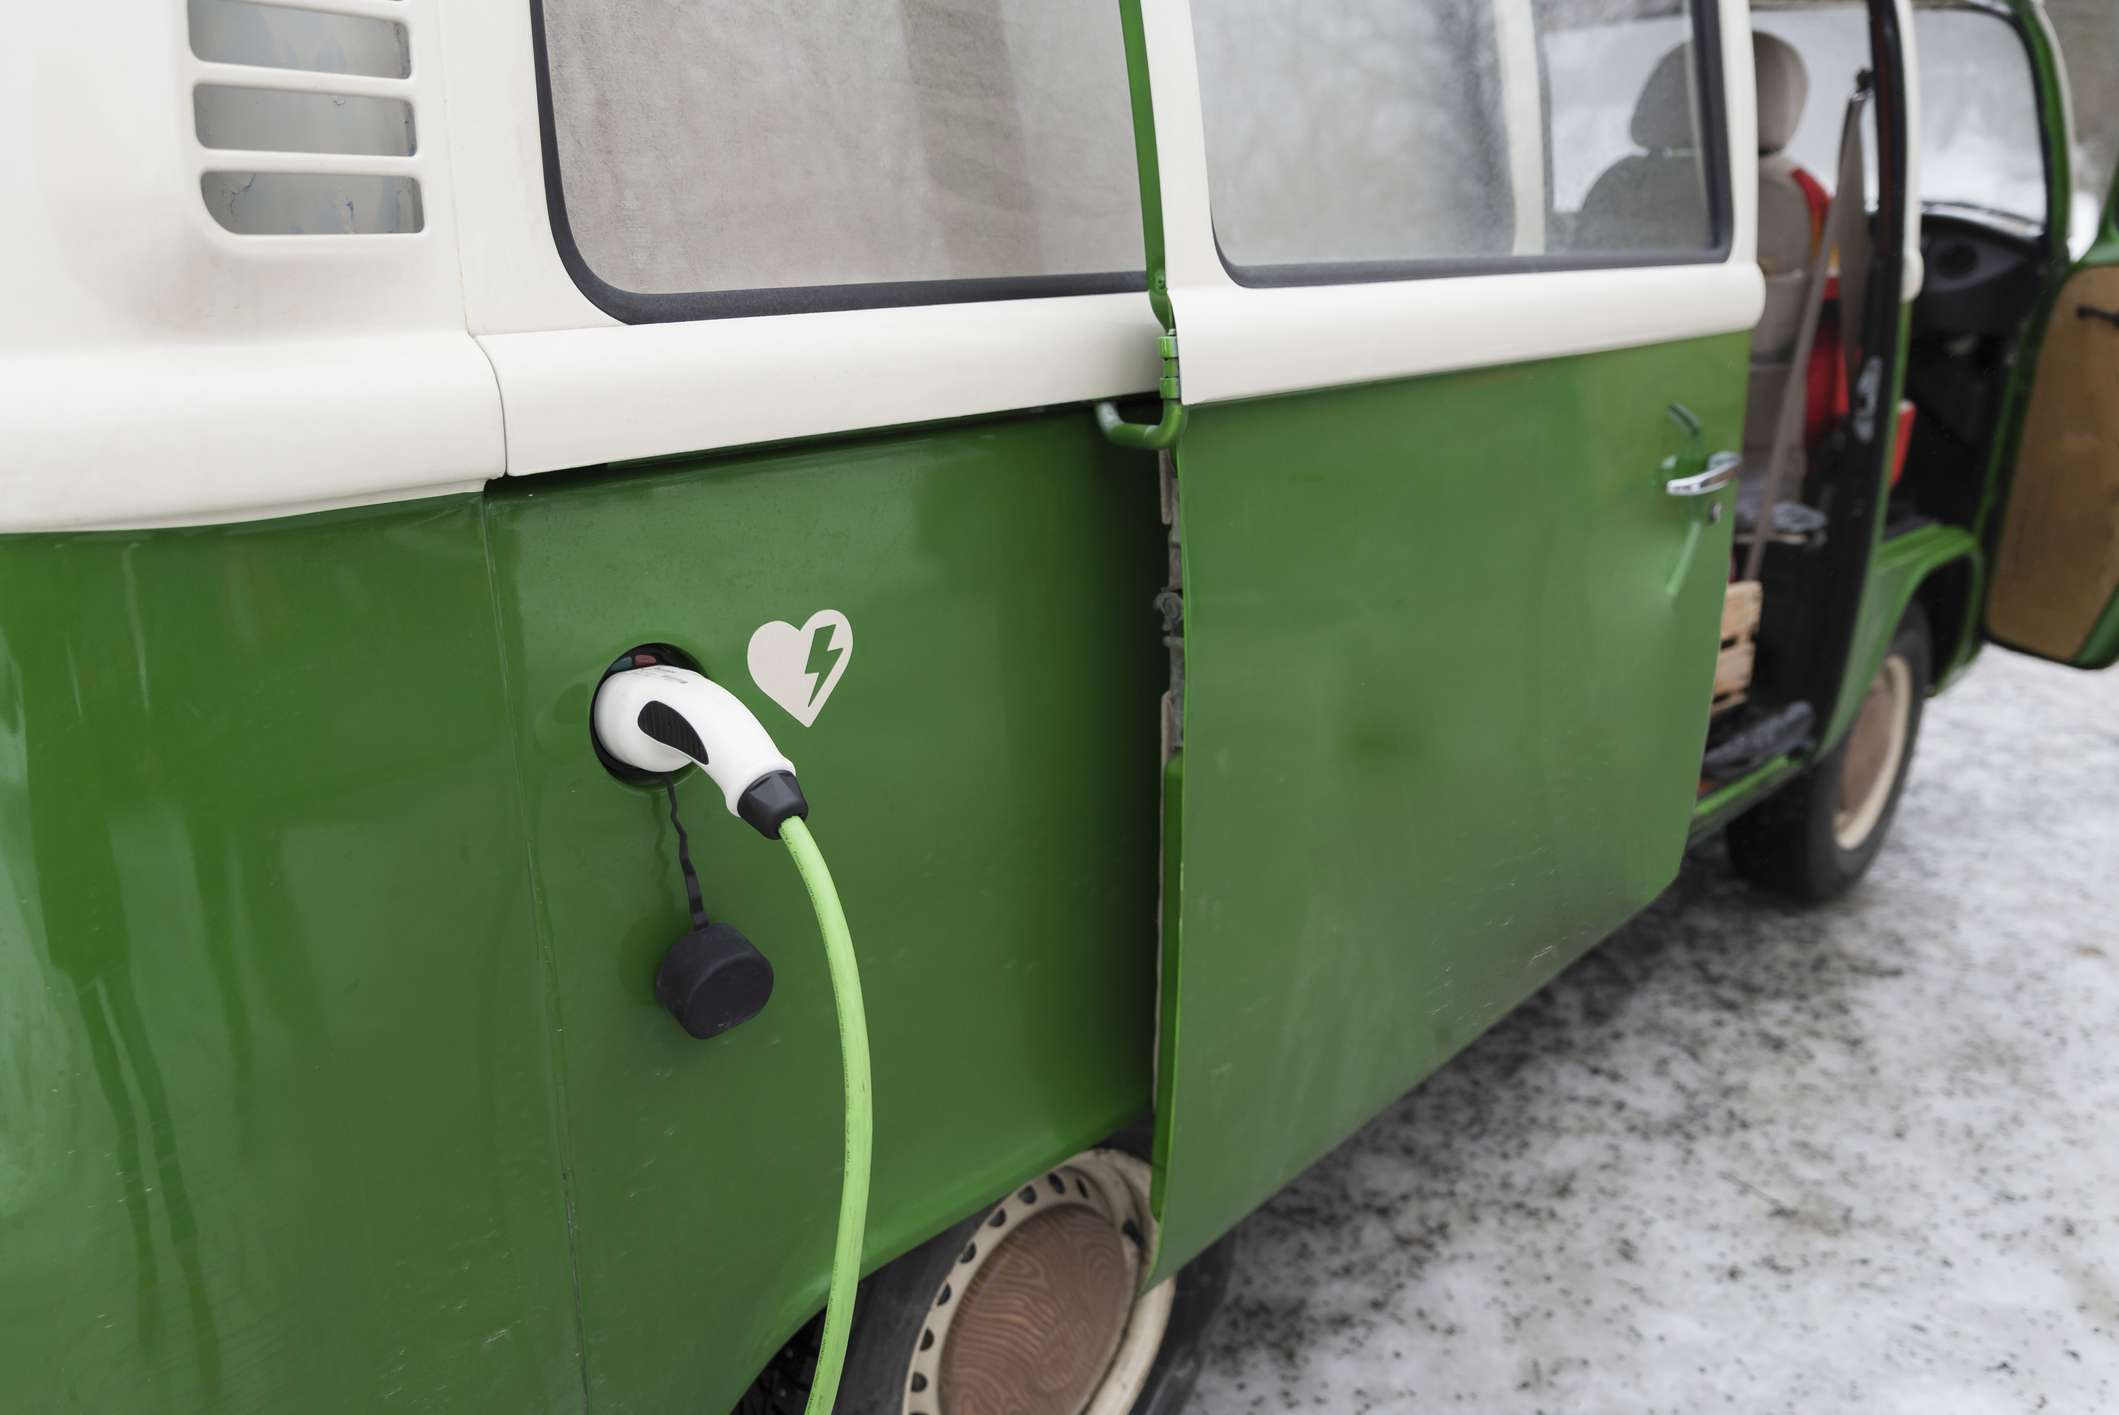 A VW camper converted to run on electricity